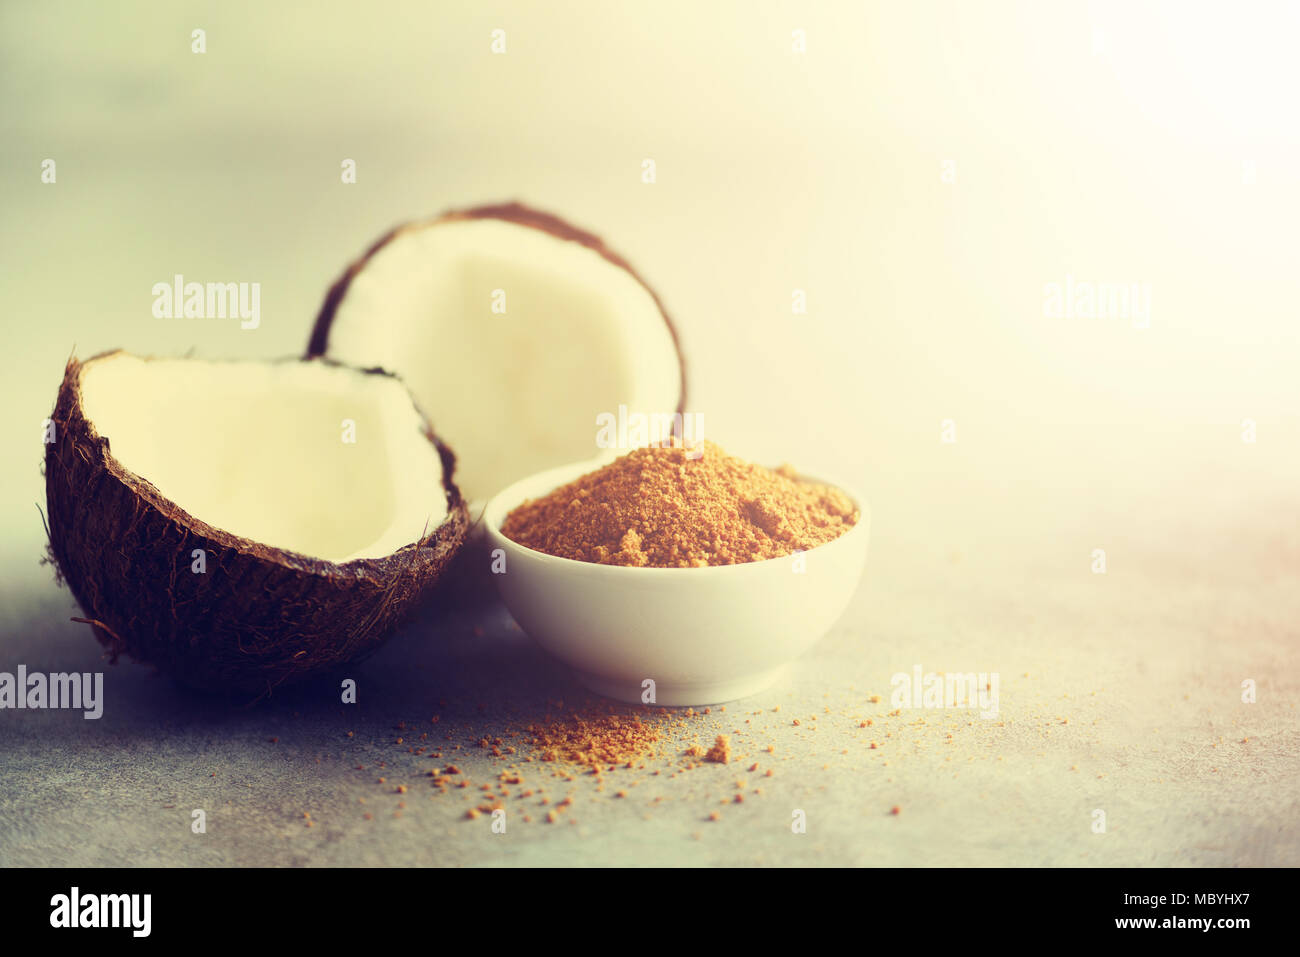 Coconut palm brown sugar and half of coconut fruit on grey concrete background. Copy space - Stock Image